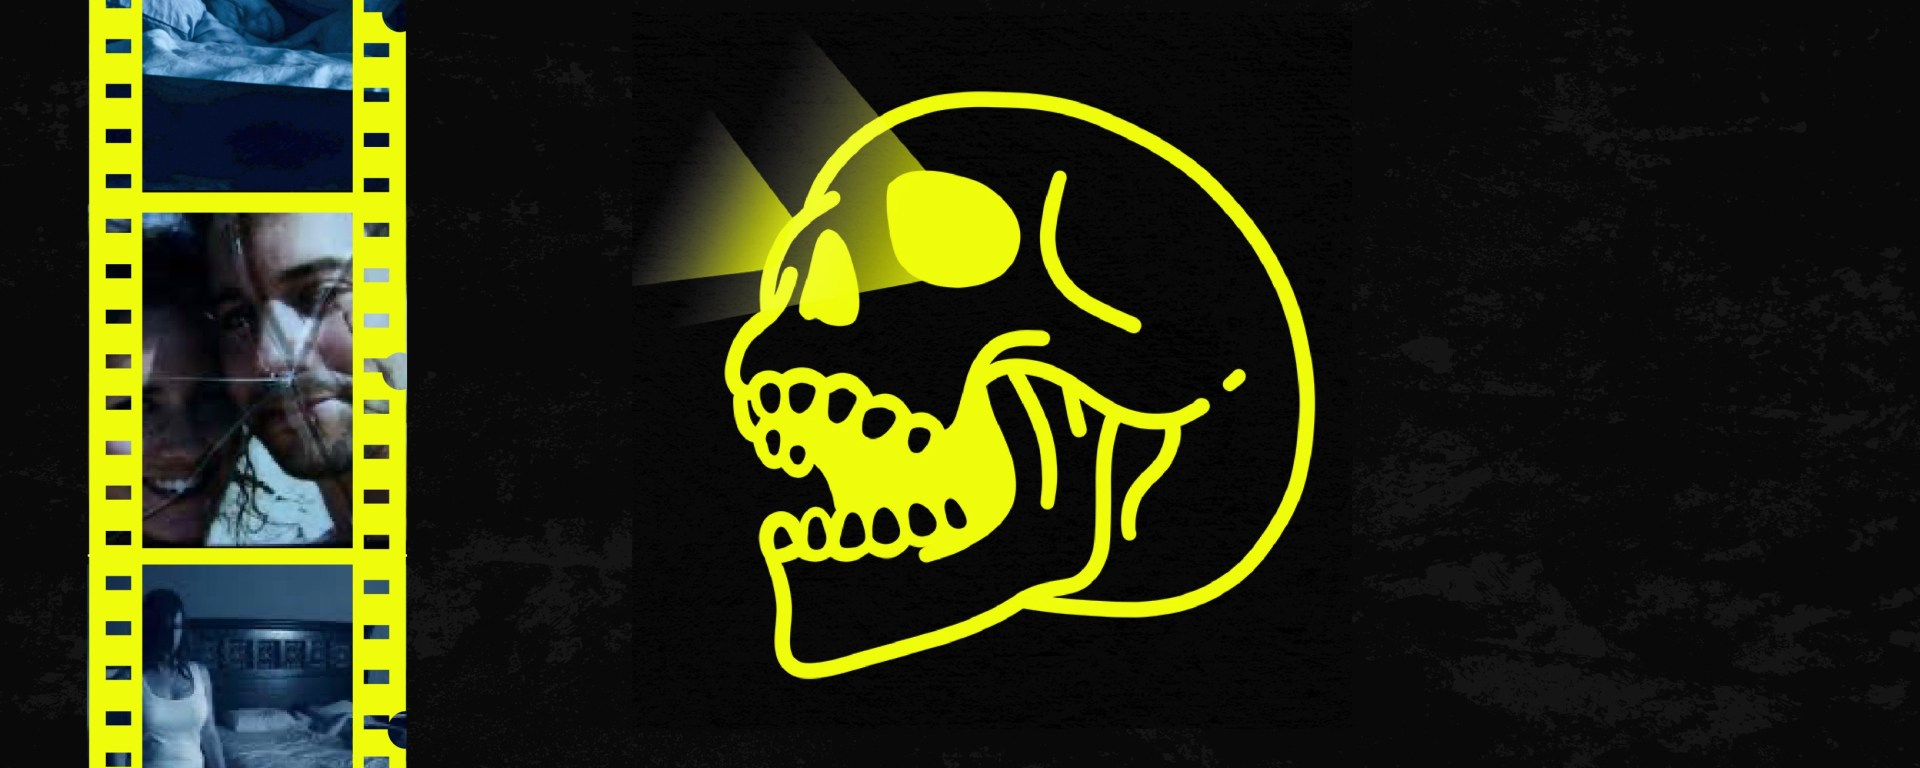 black background with yellow skull in the middle with real of movie scenes on left side